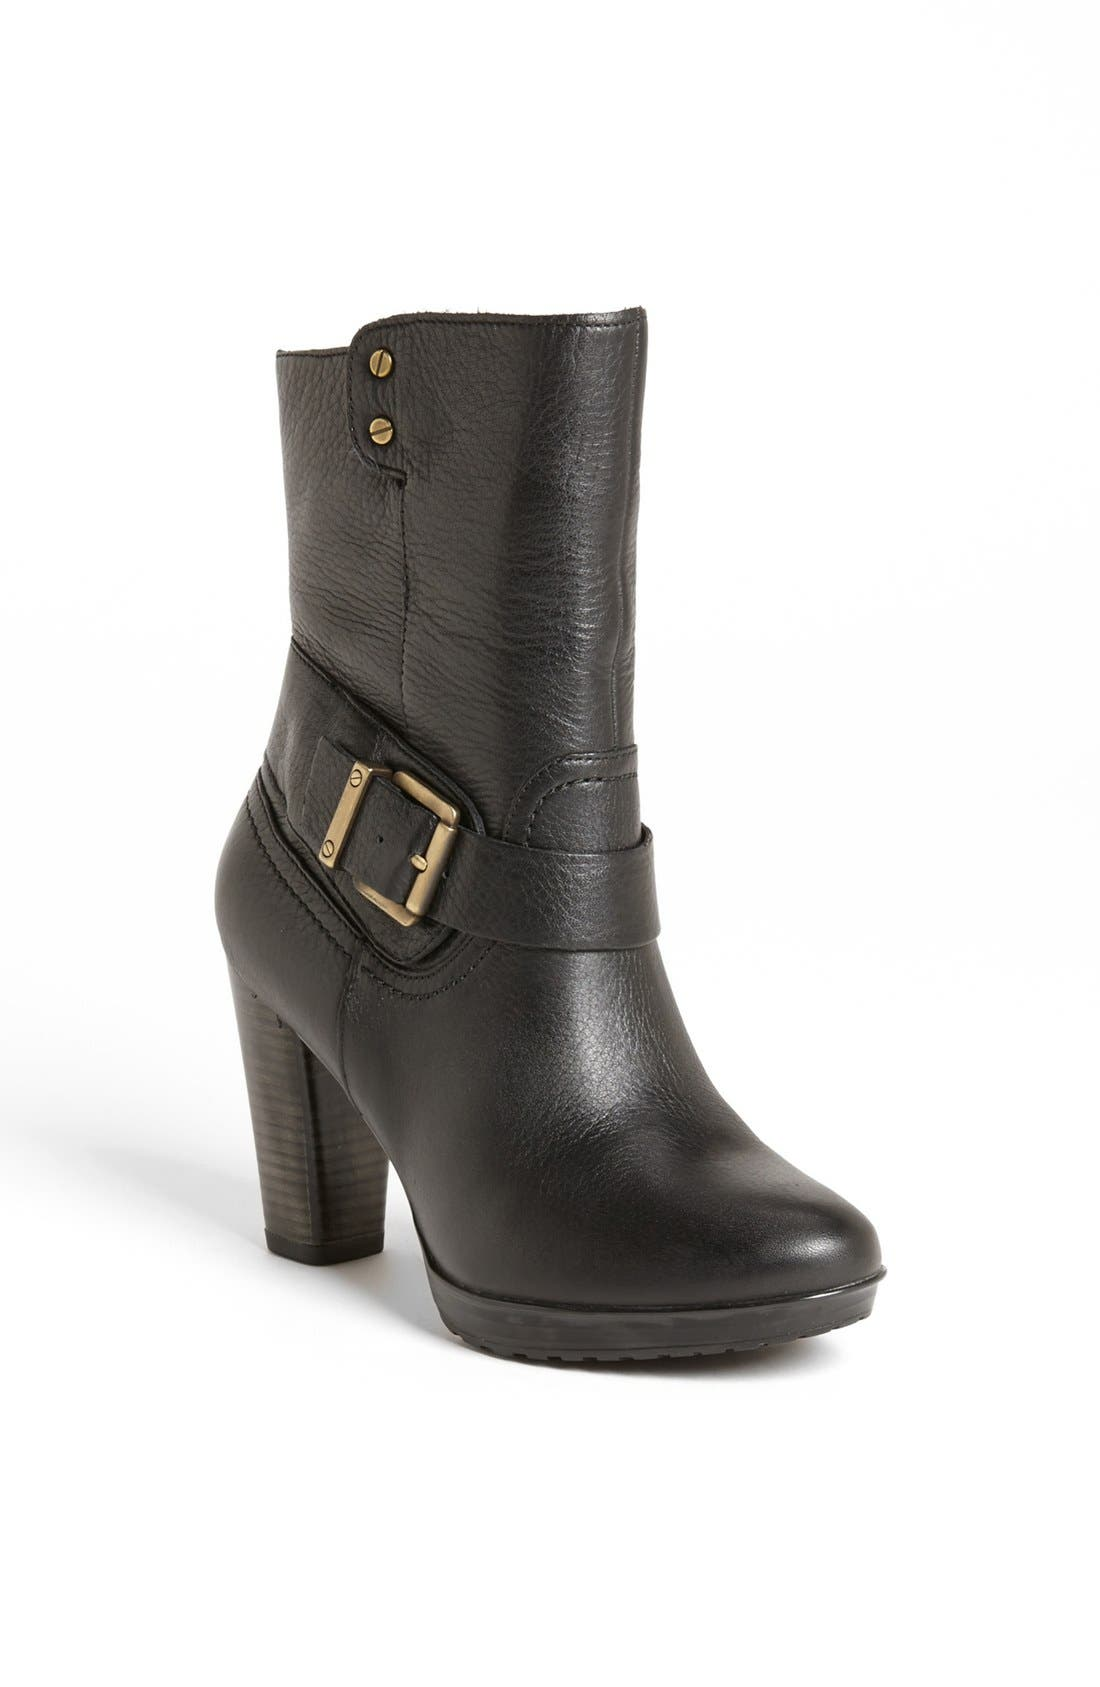 Clarks 'Lida' Sayer Bootie,                             Main thumbnail 1, color,                             003